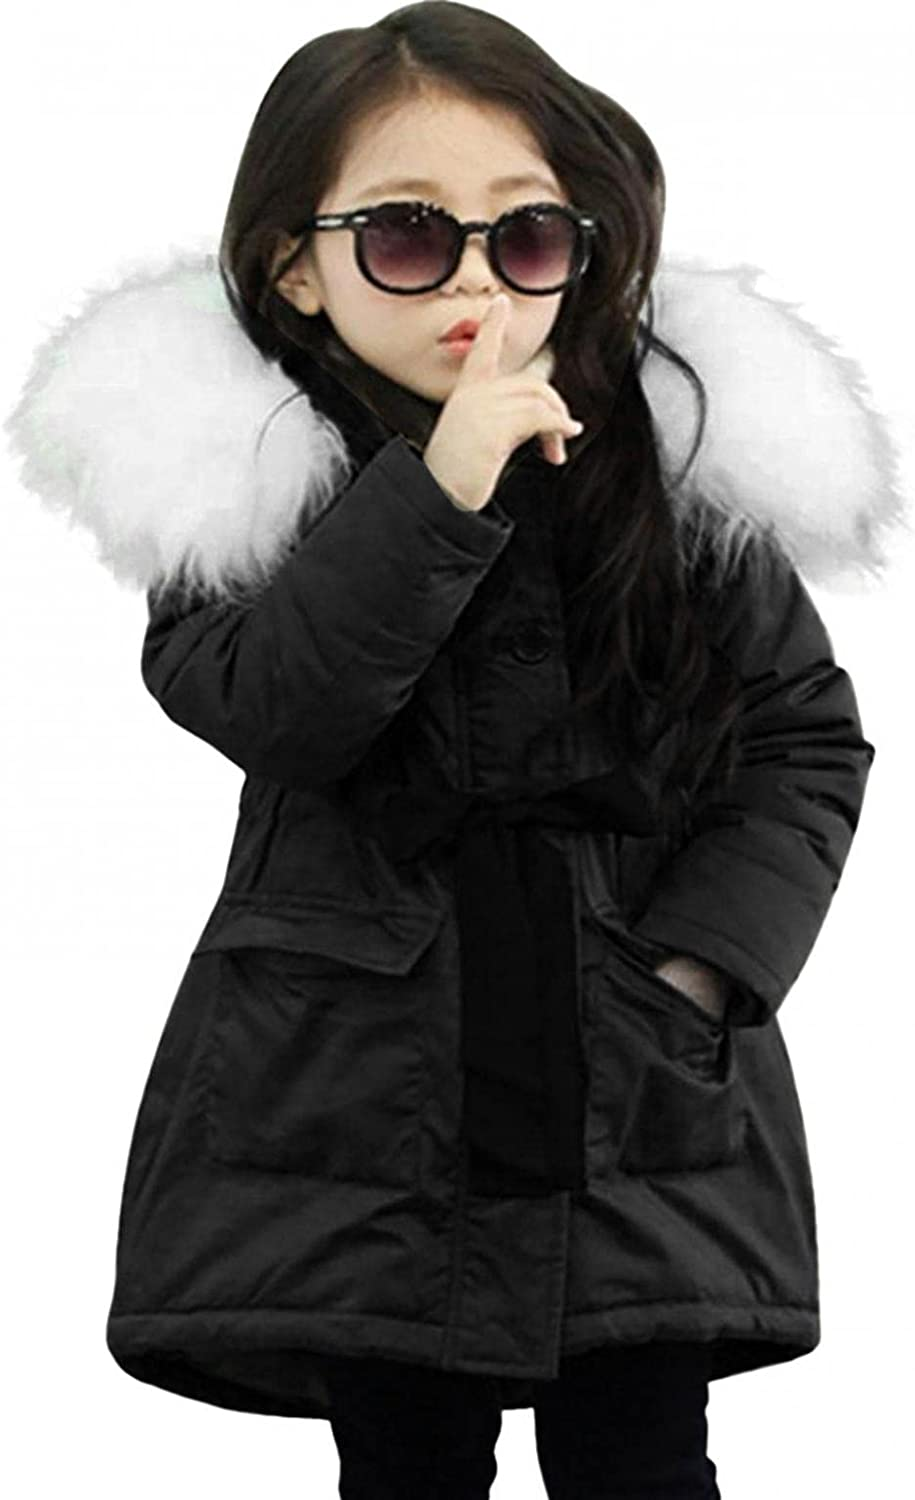 Girls Kids Winter Mid-Long Fur Hooded Cool Parkas Jacket Zipper Cold Thermal Outerwear 2-12 Years